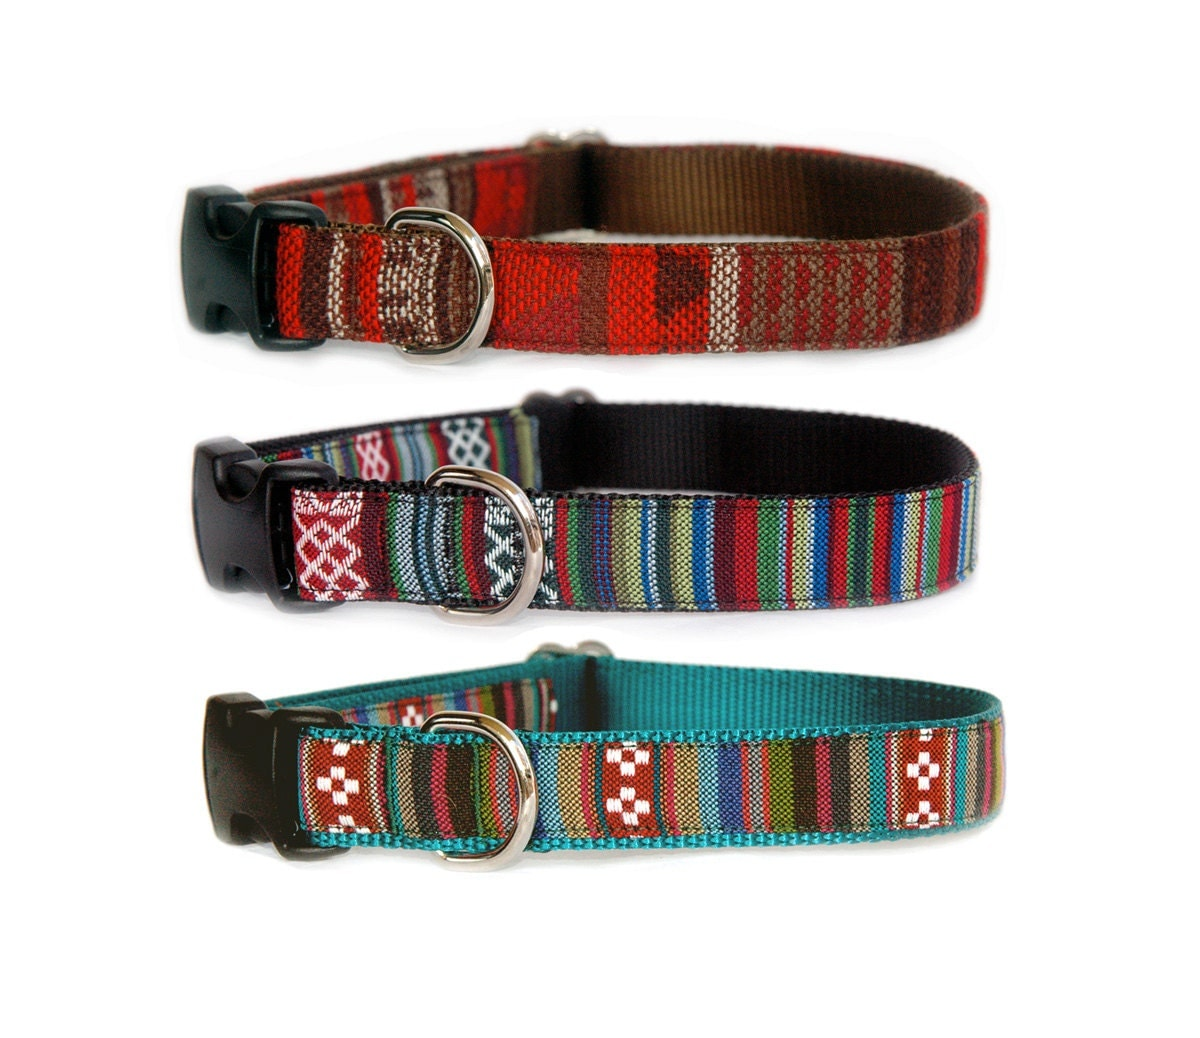 Native American Dog Collars Uk